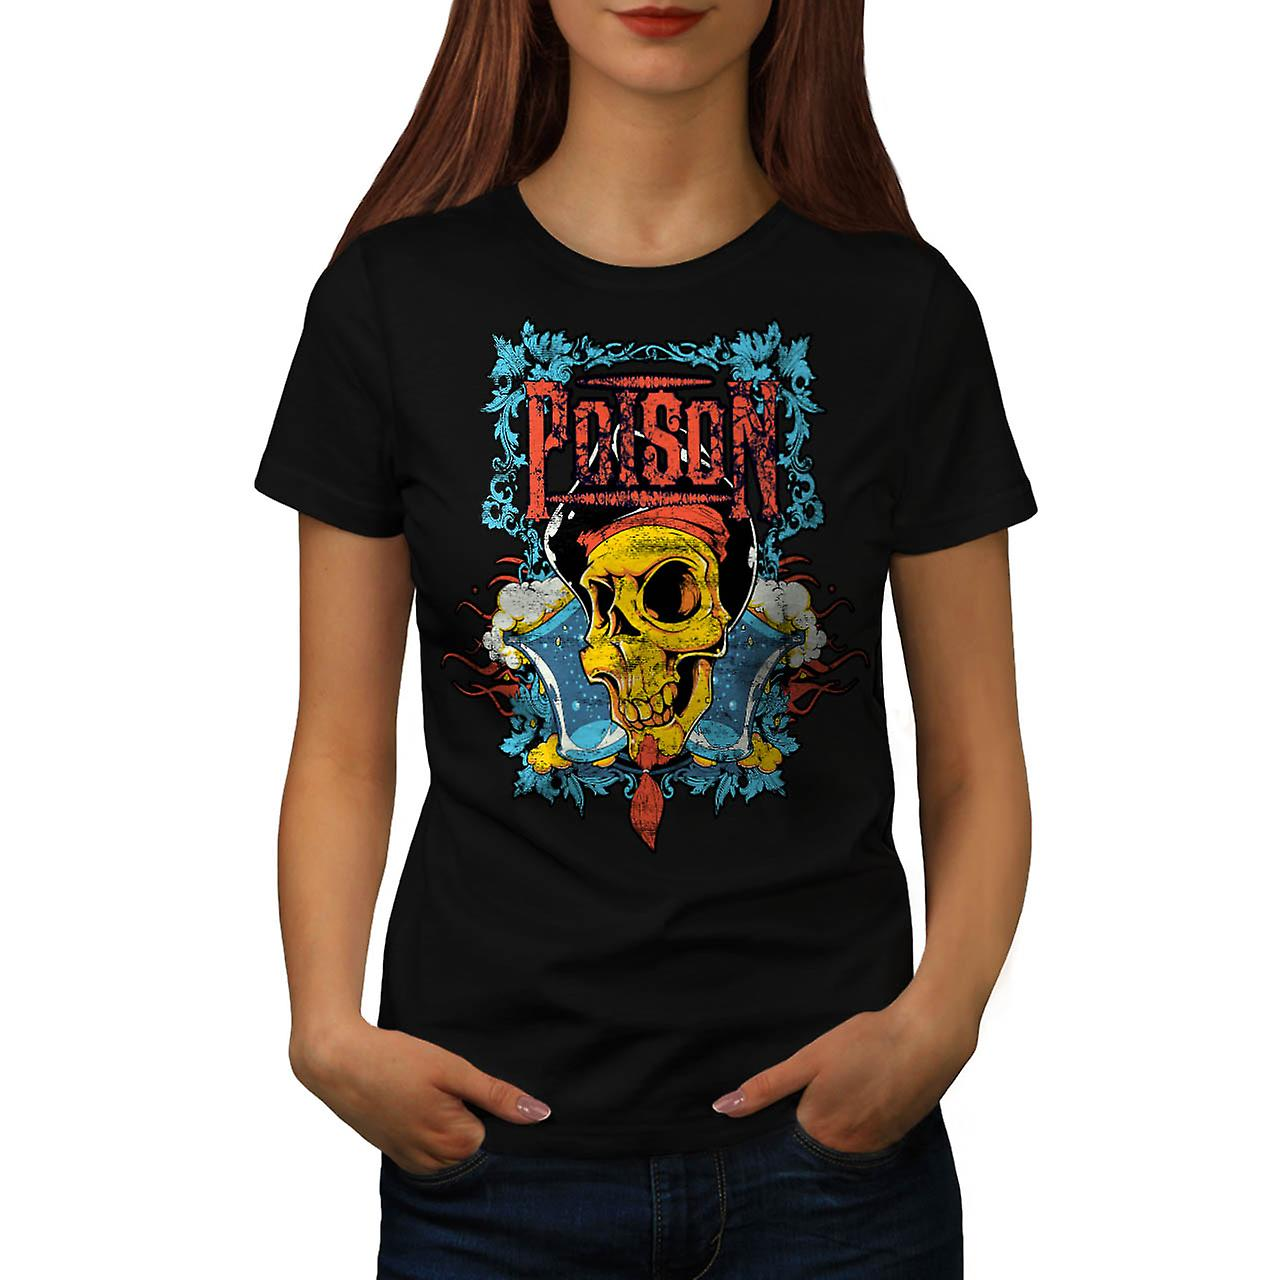 Poison Pirate Skull onda Monster kvinnor svart T-shirt | Wellcoda